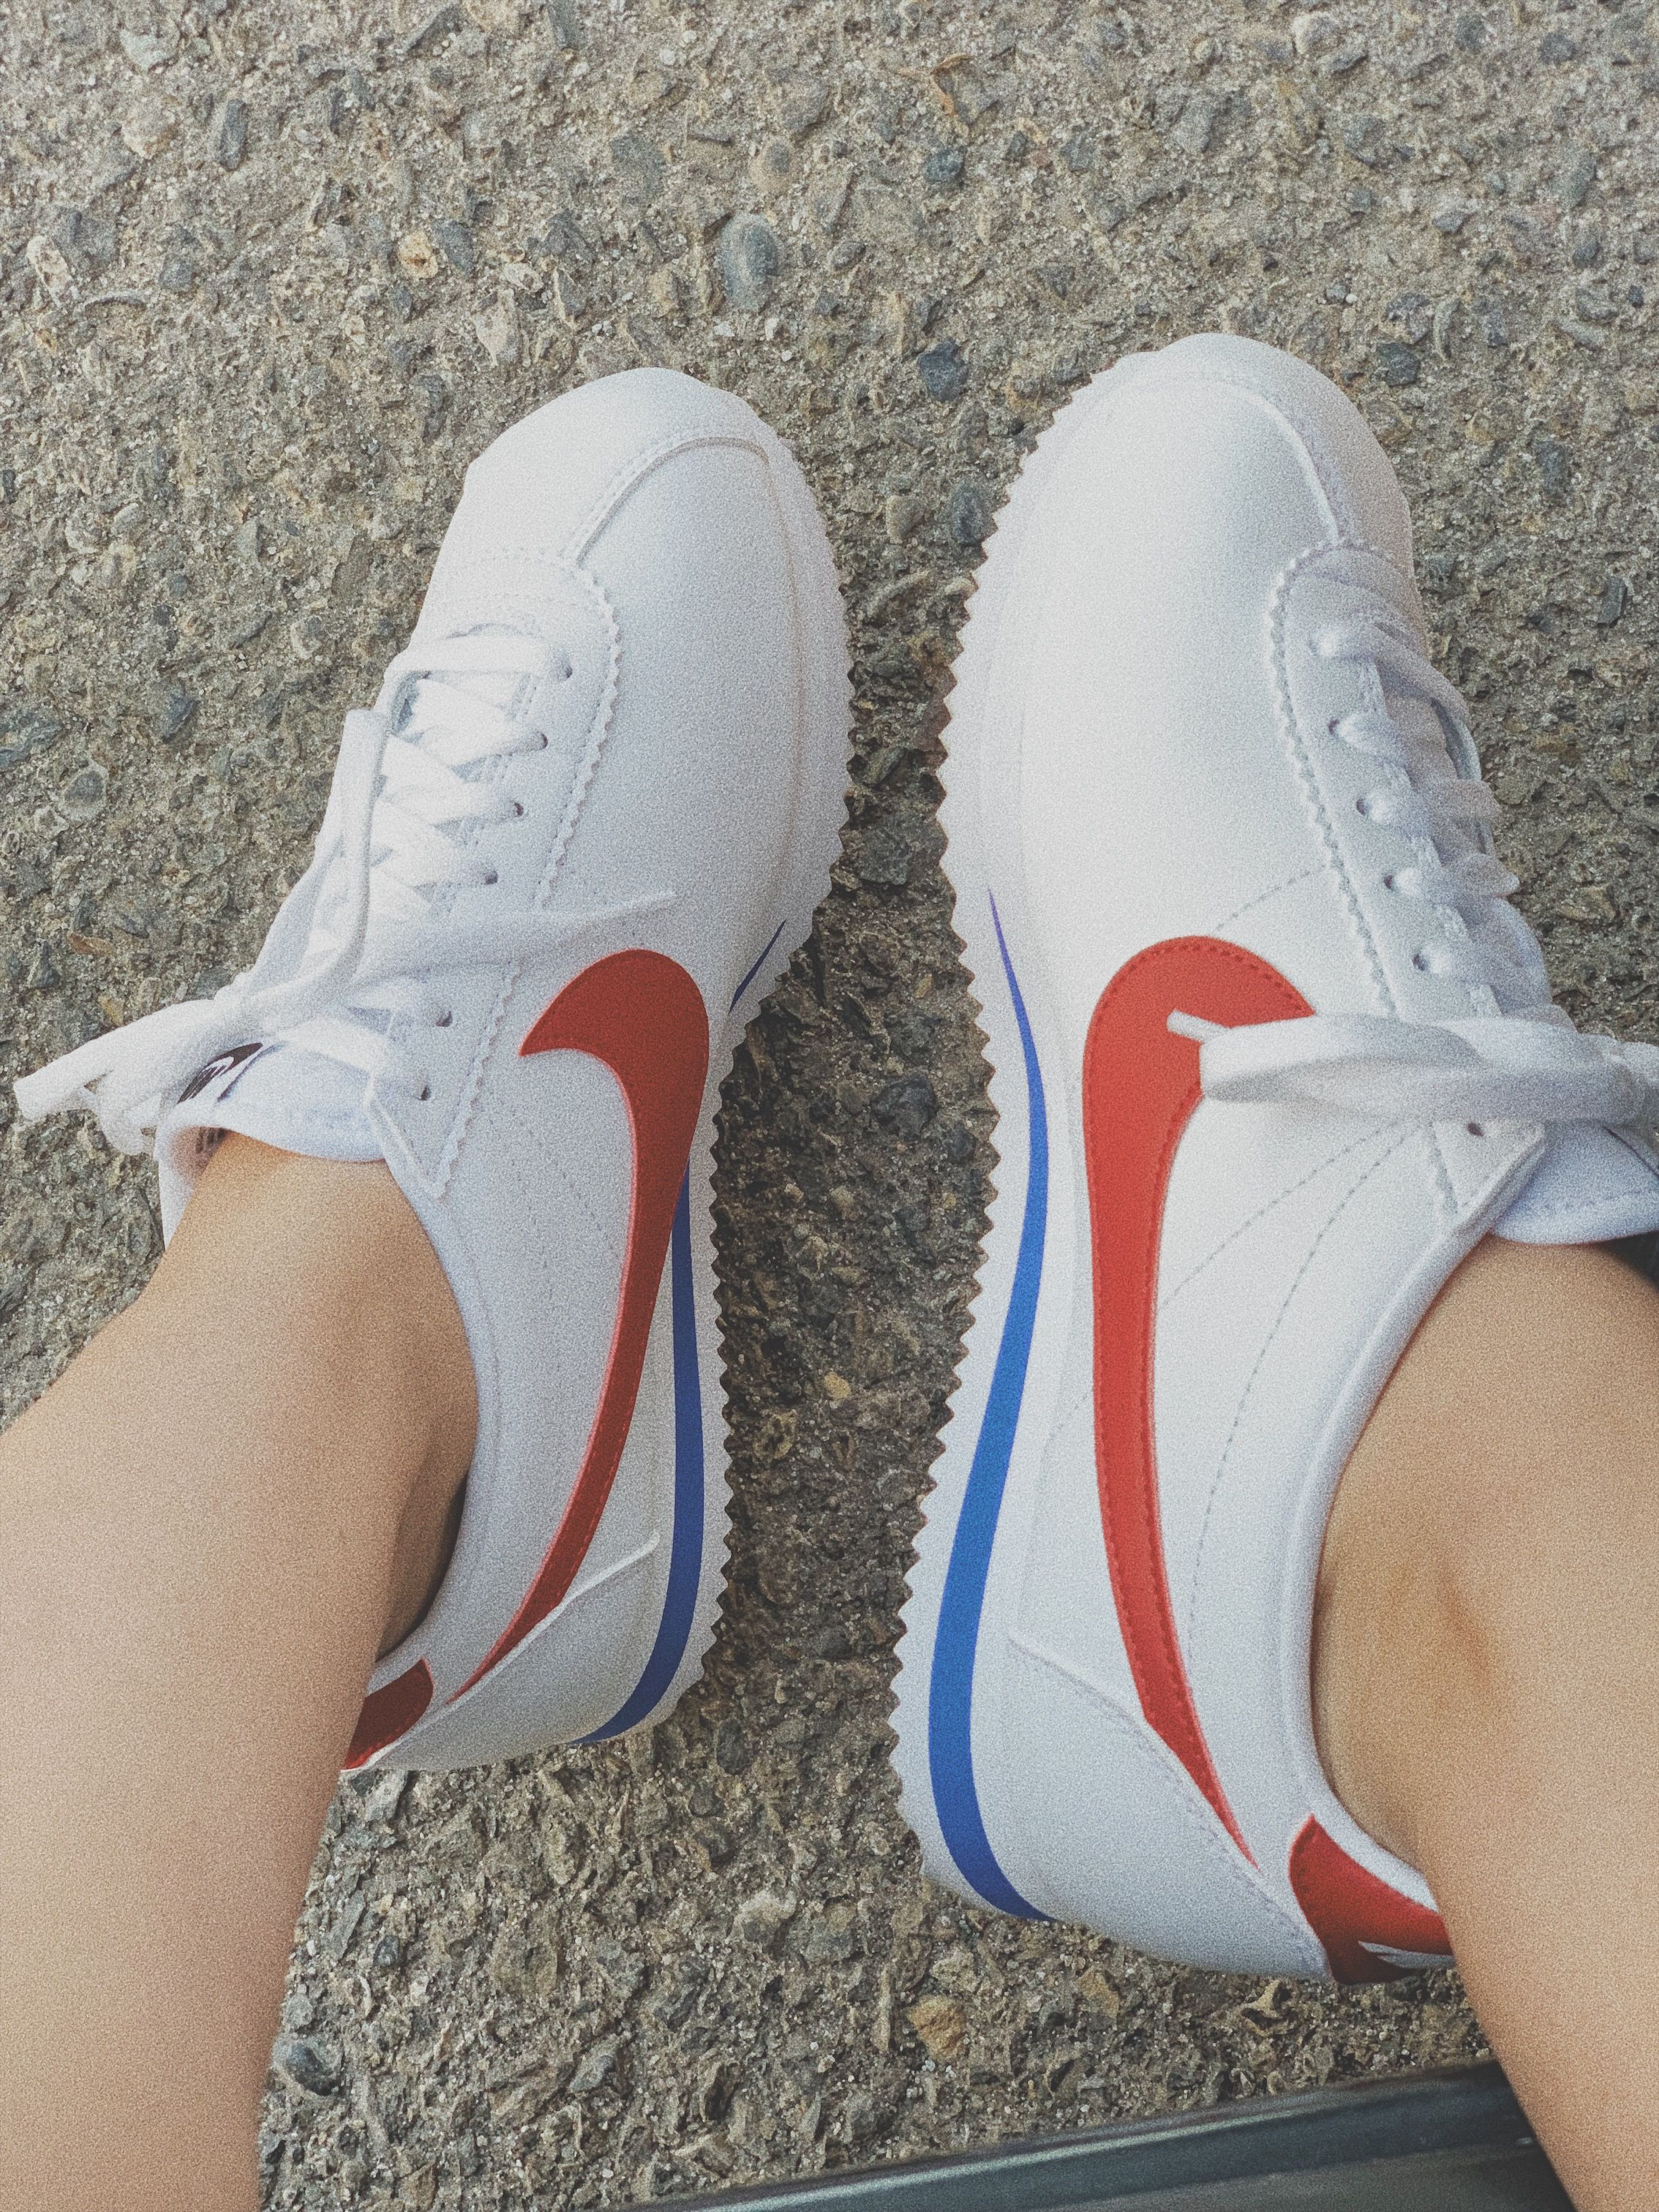 7356d2f4 Nike Classic Cortez - White/Varsity Royal/Varsity Red | Shoes in ...